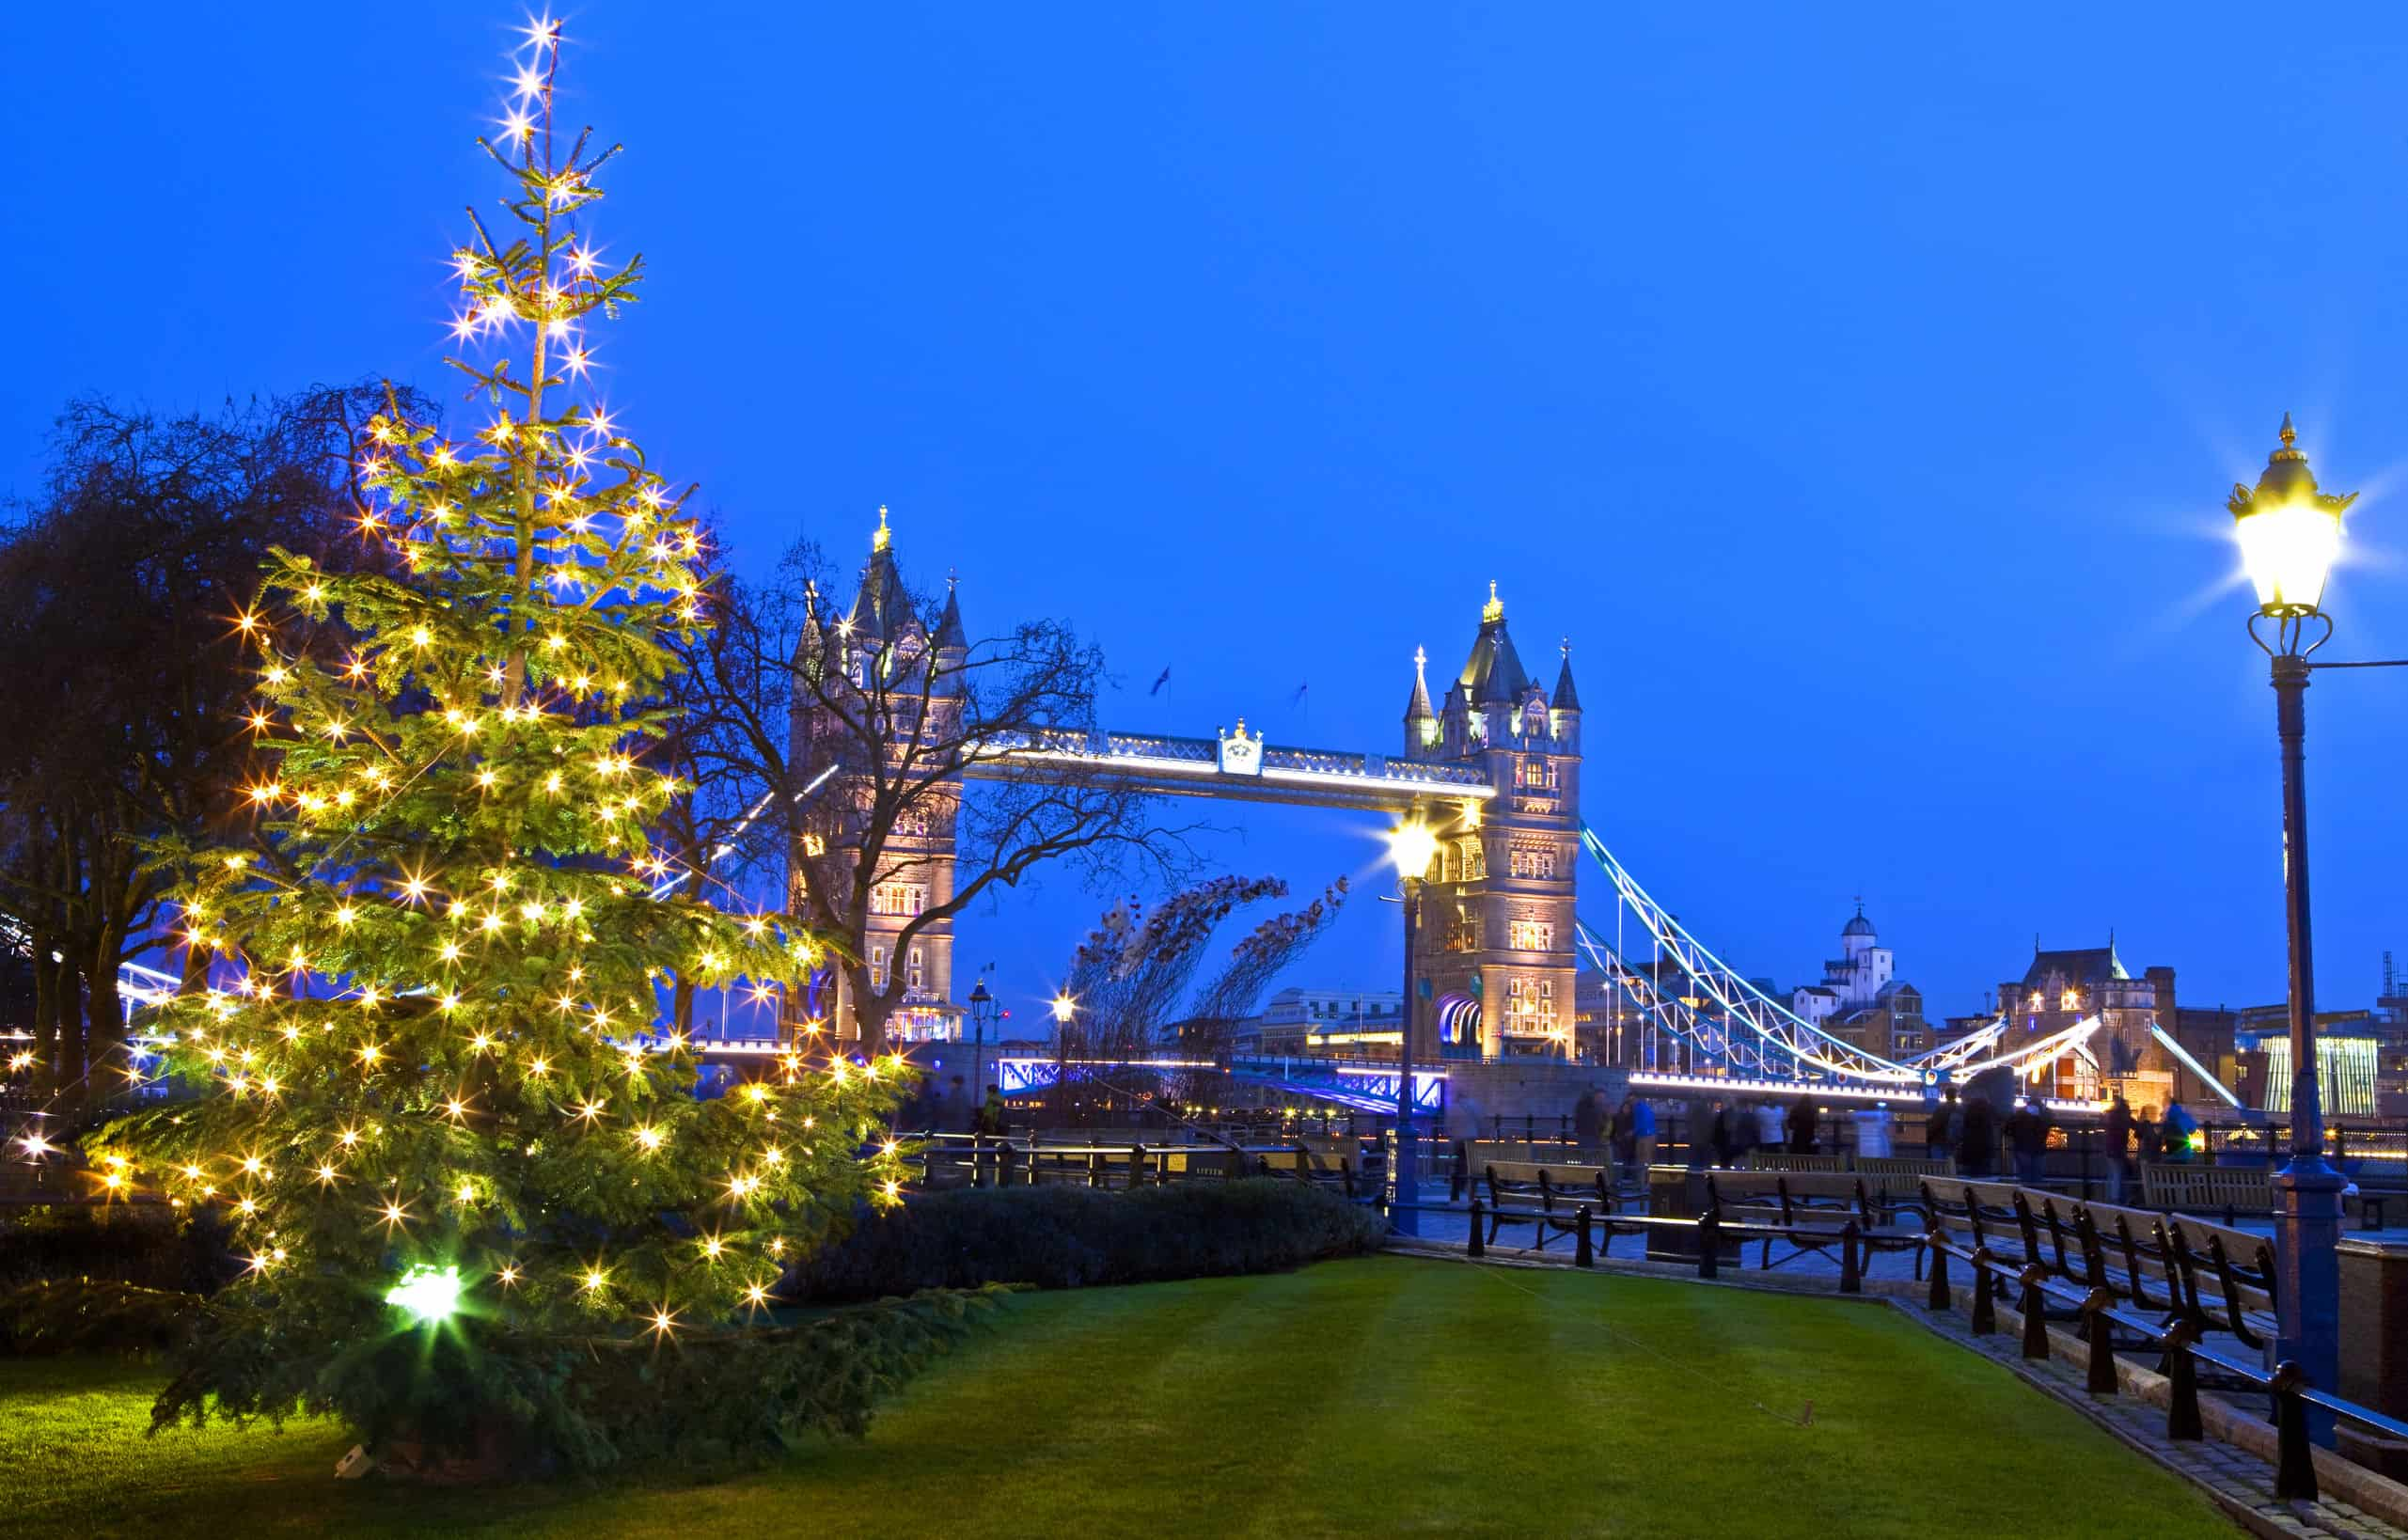 34634585 - a beautiful view of tower bridge in london during christmastime